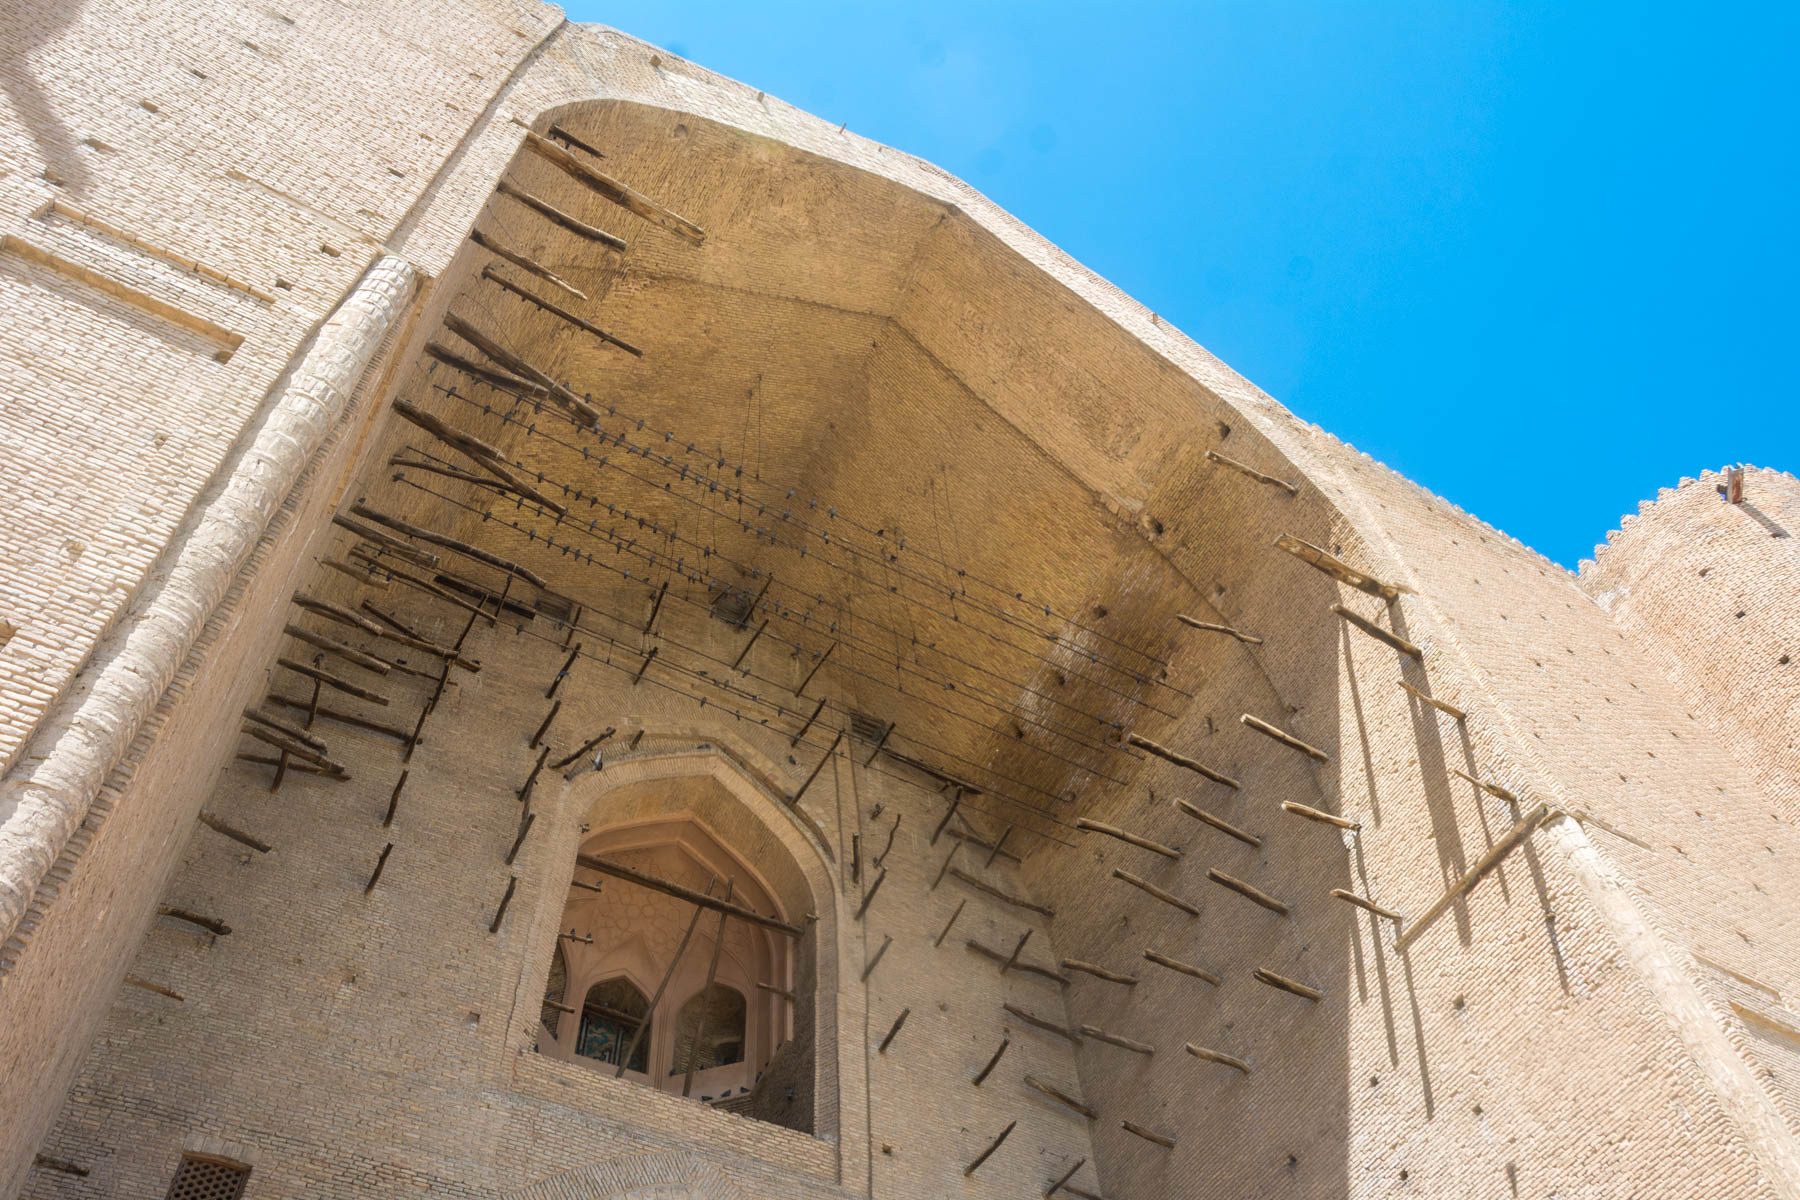 The entrance to the Khoja Ahmed Yasawi mausoleum in Turkestan, Kazakhstan - Lost With Purpose